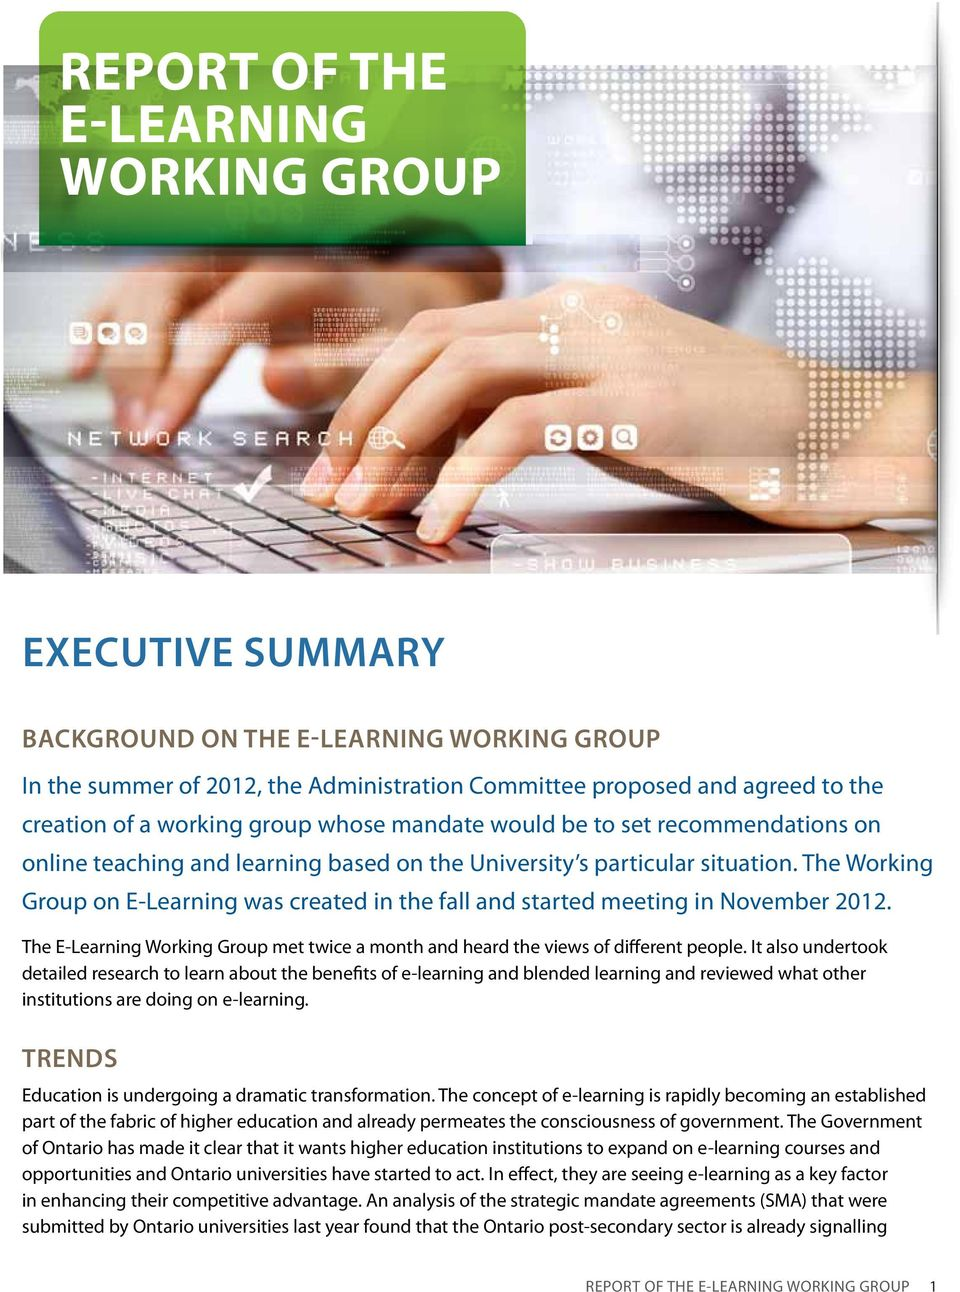 The Working Group on E-Learning was created in the fall and started meeting in November 2012. The E-Learning Working Group met twice a month and heard the views of different people.